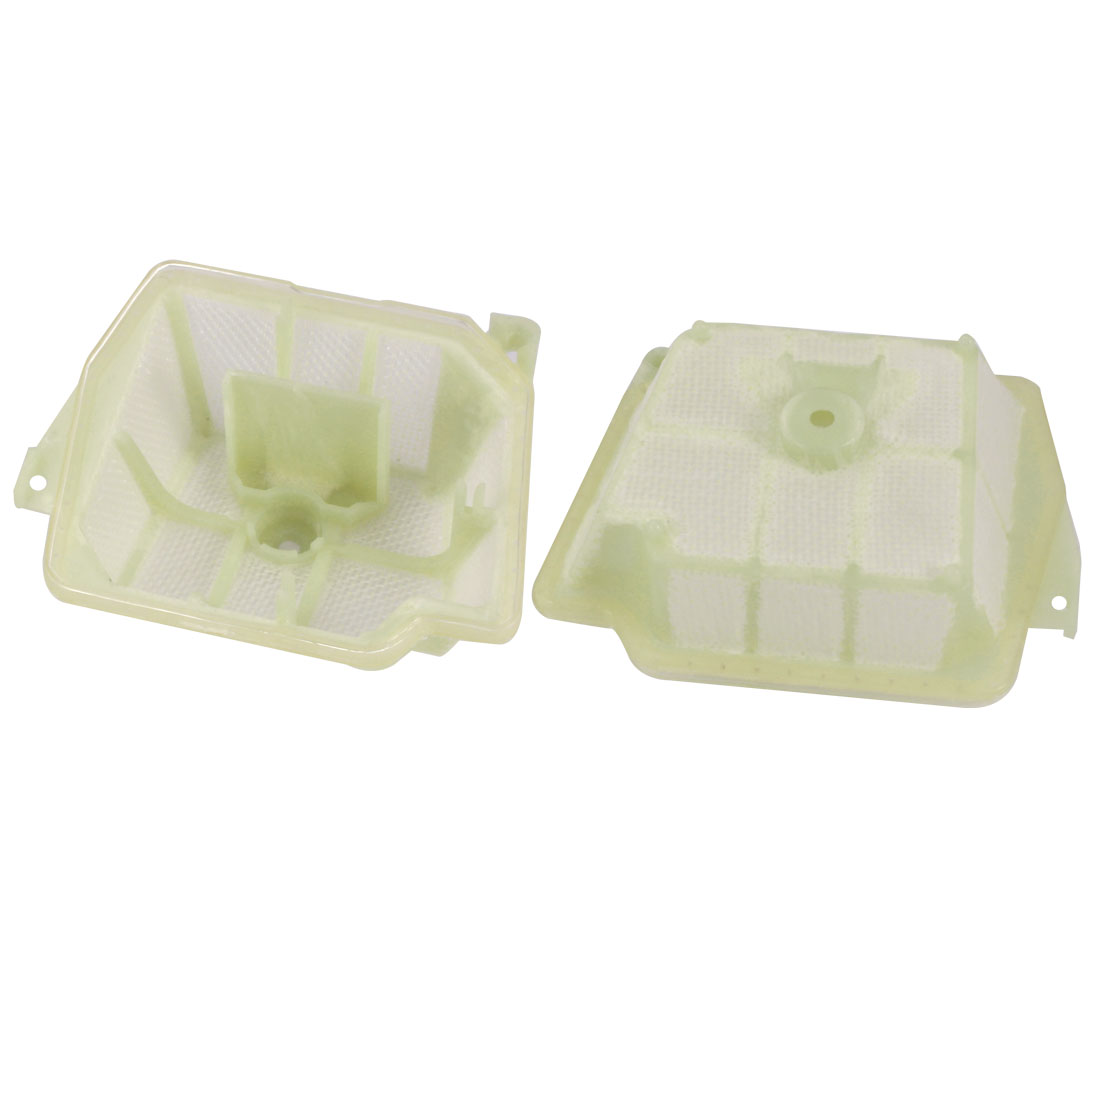 2pcs New Replacement Extra Guard Panel Engine S361 Air Filter Cleaner Accessory